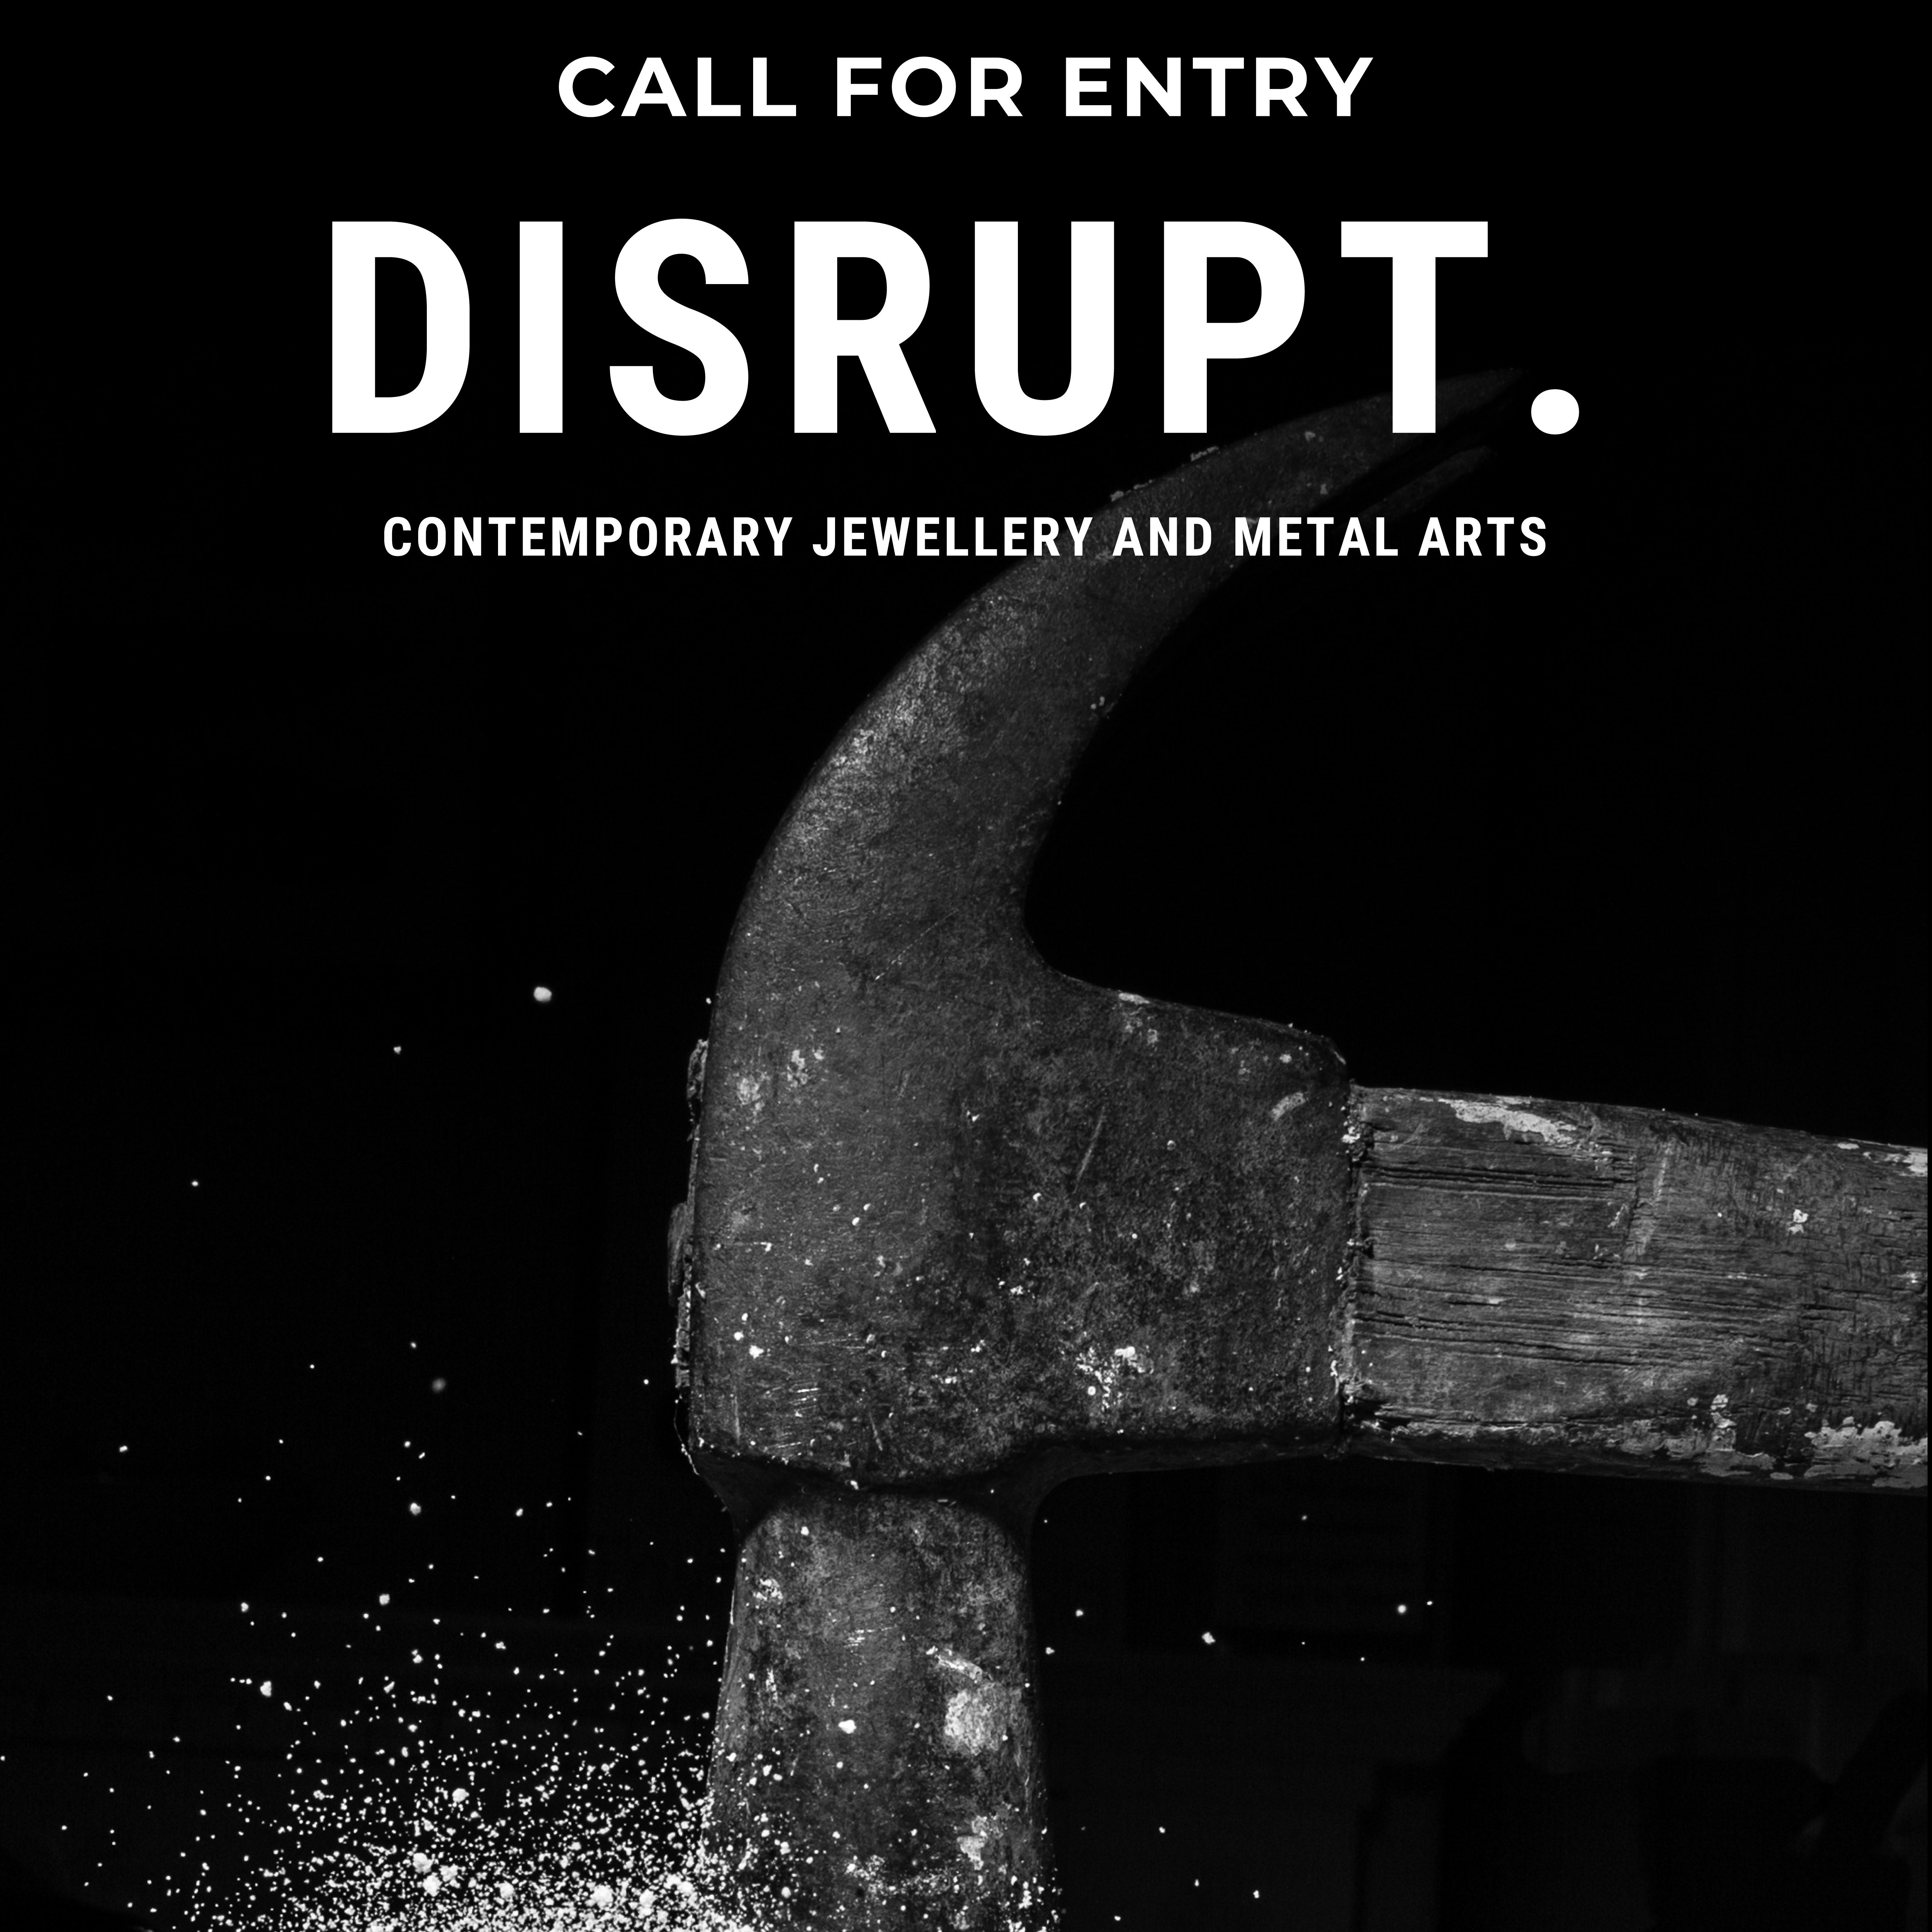 DISRUPT. call for entry